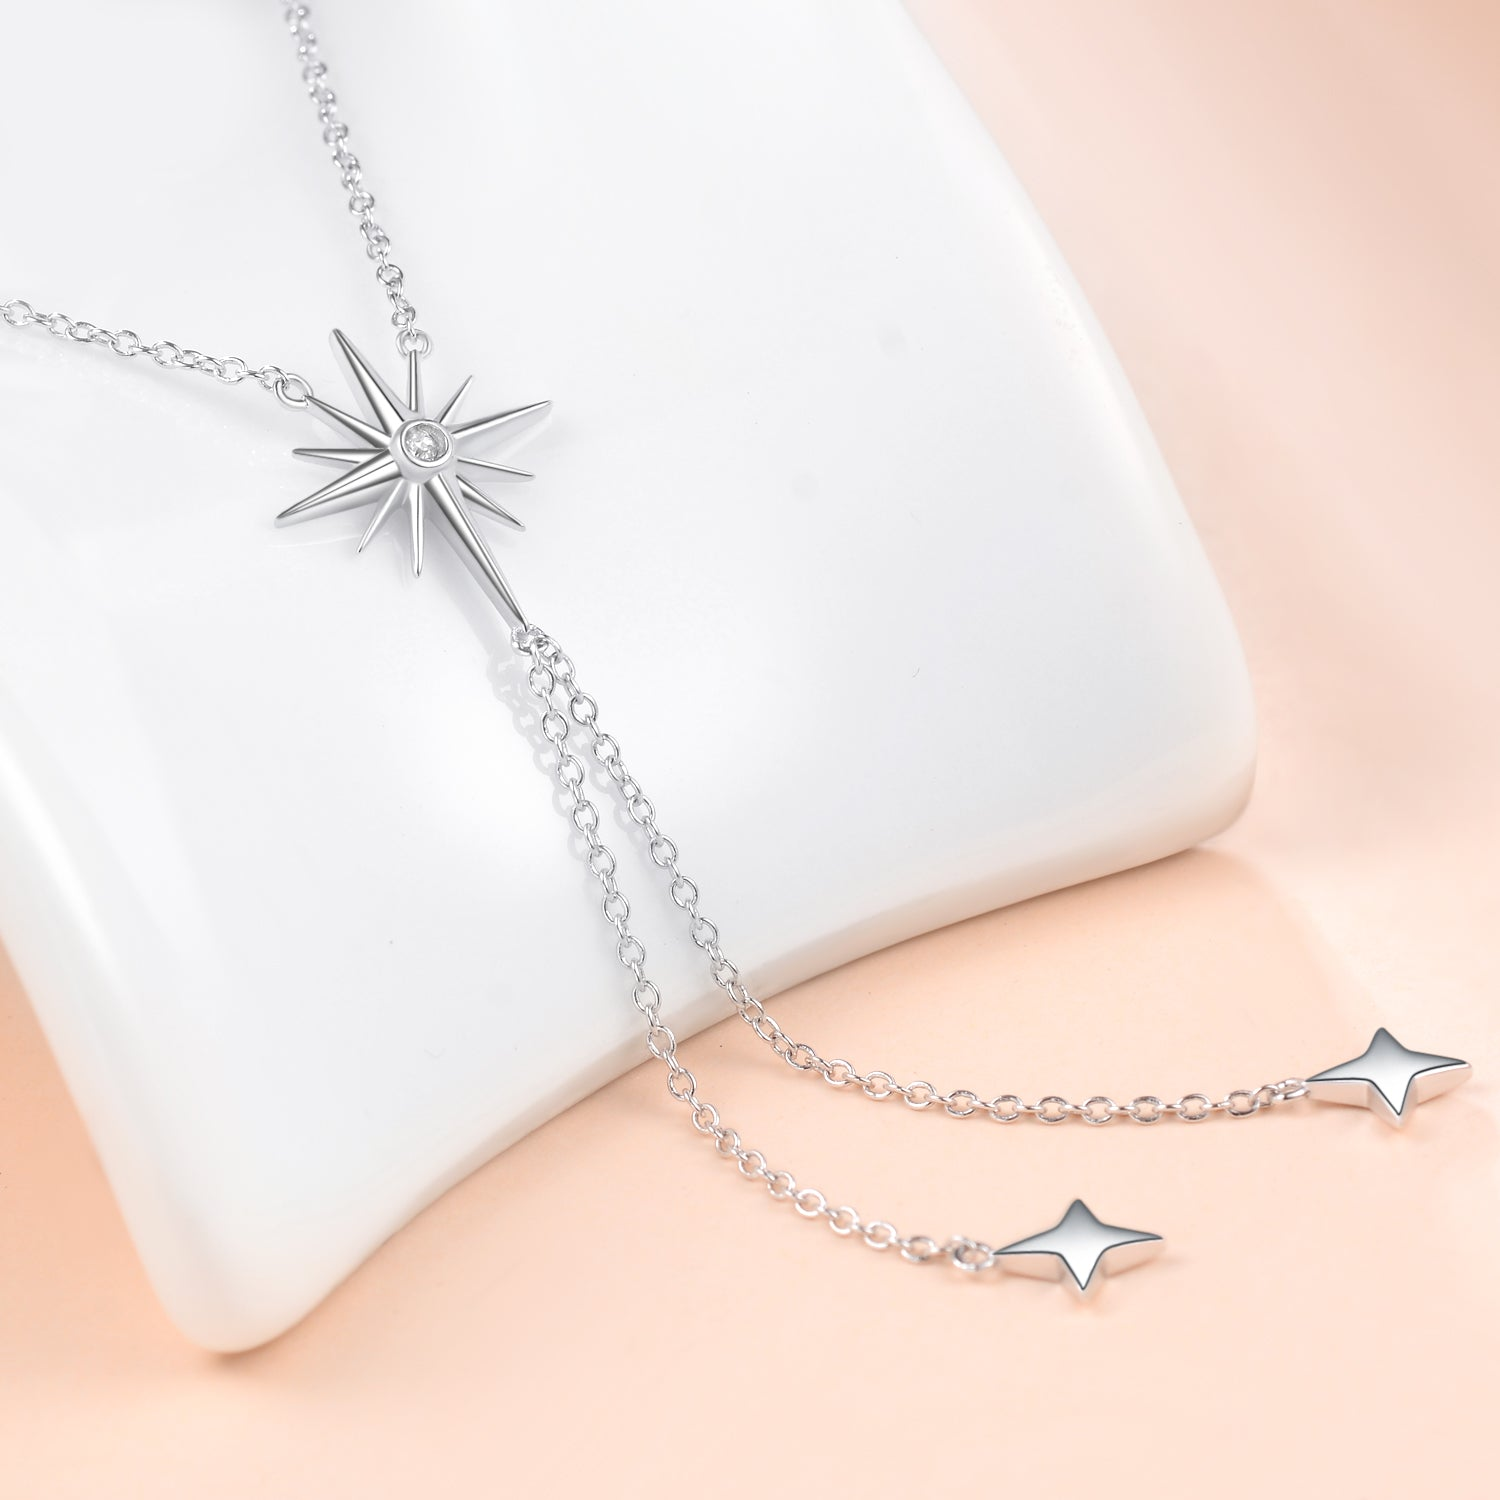 High Quality Cubic Zircon Pendant Tassel Necklace Wholesale 925 Sterling Silver